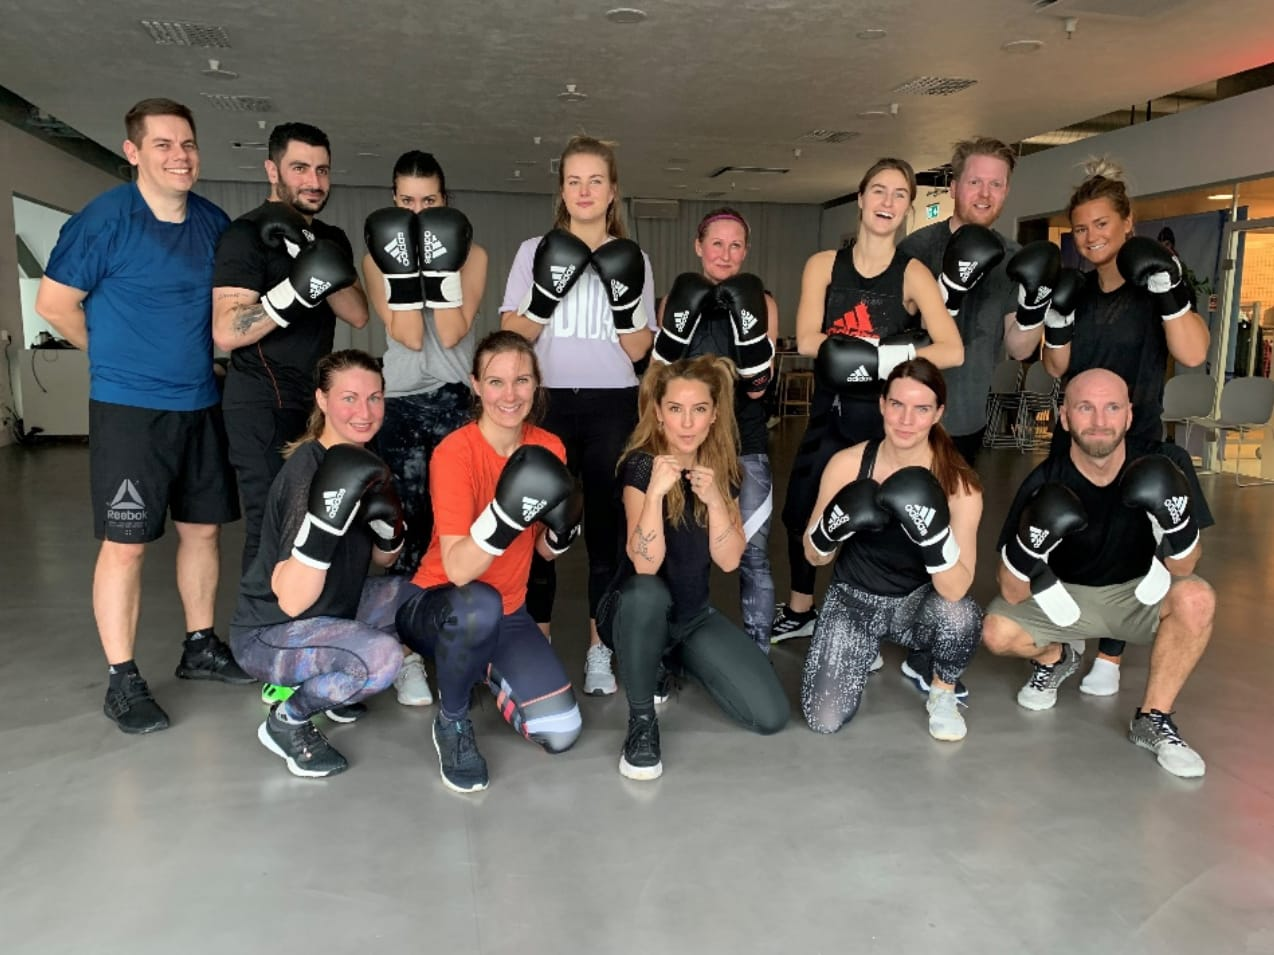 The adidas Nordics team in a group picture after a Night Fight class with Alexandra Pizzoni. Self-Care, adidas, Training, Workout, healtyish, GamePlanA.